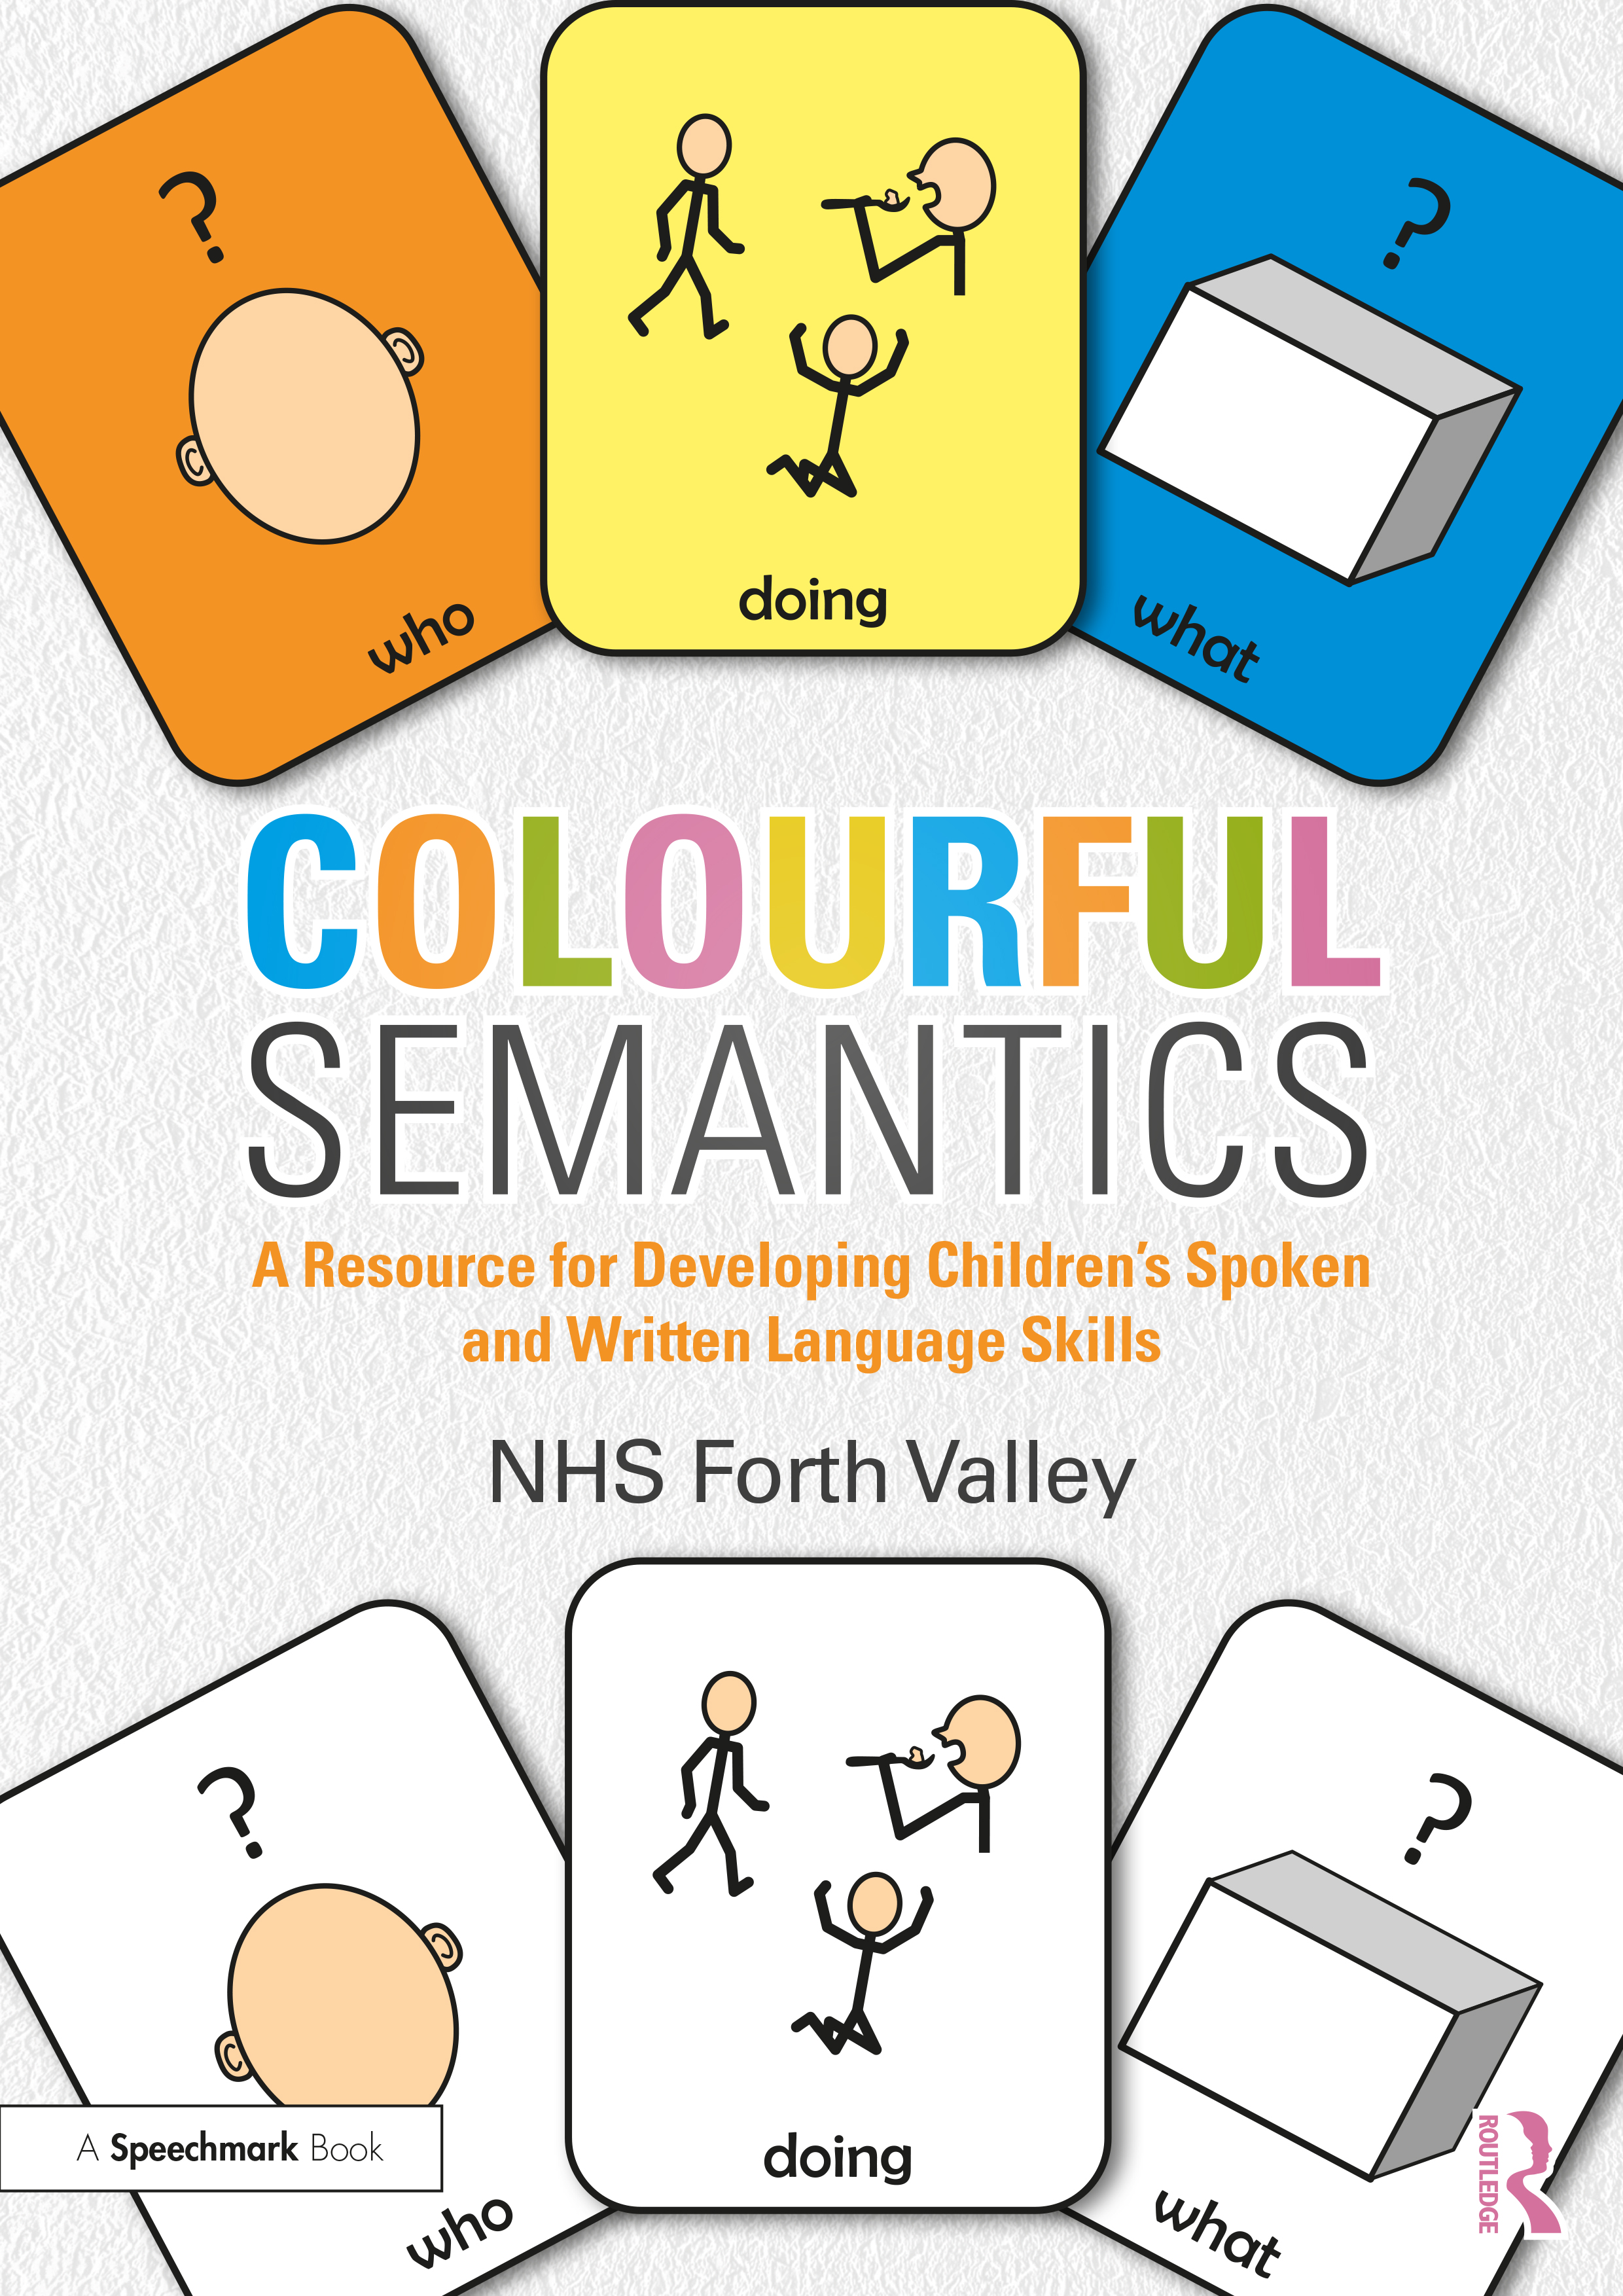 Colourful Semantics: A Resource for Developing Children's Spoken and Written Language Skills book cover